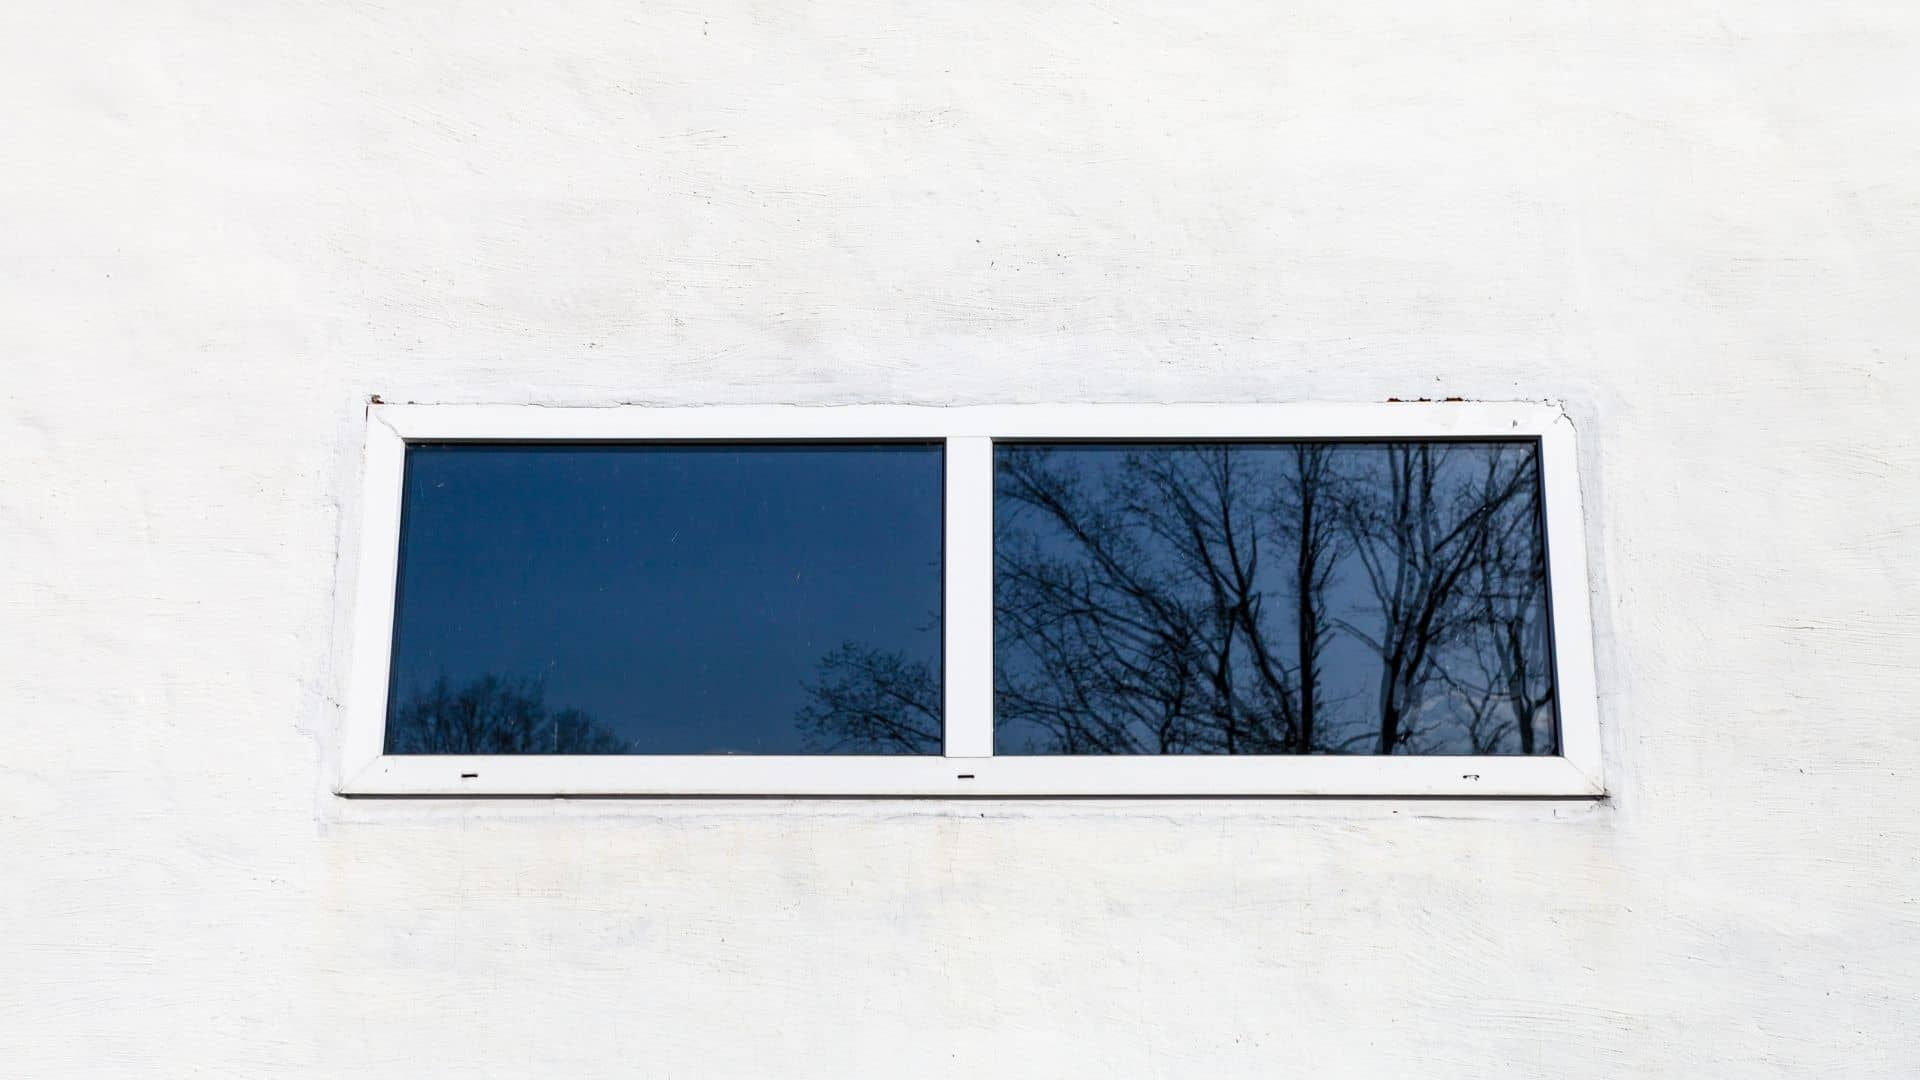 How To Blackout Windows With Paint